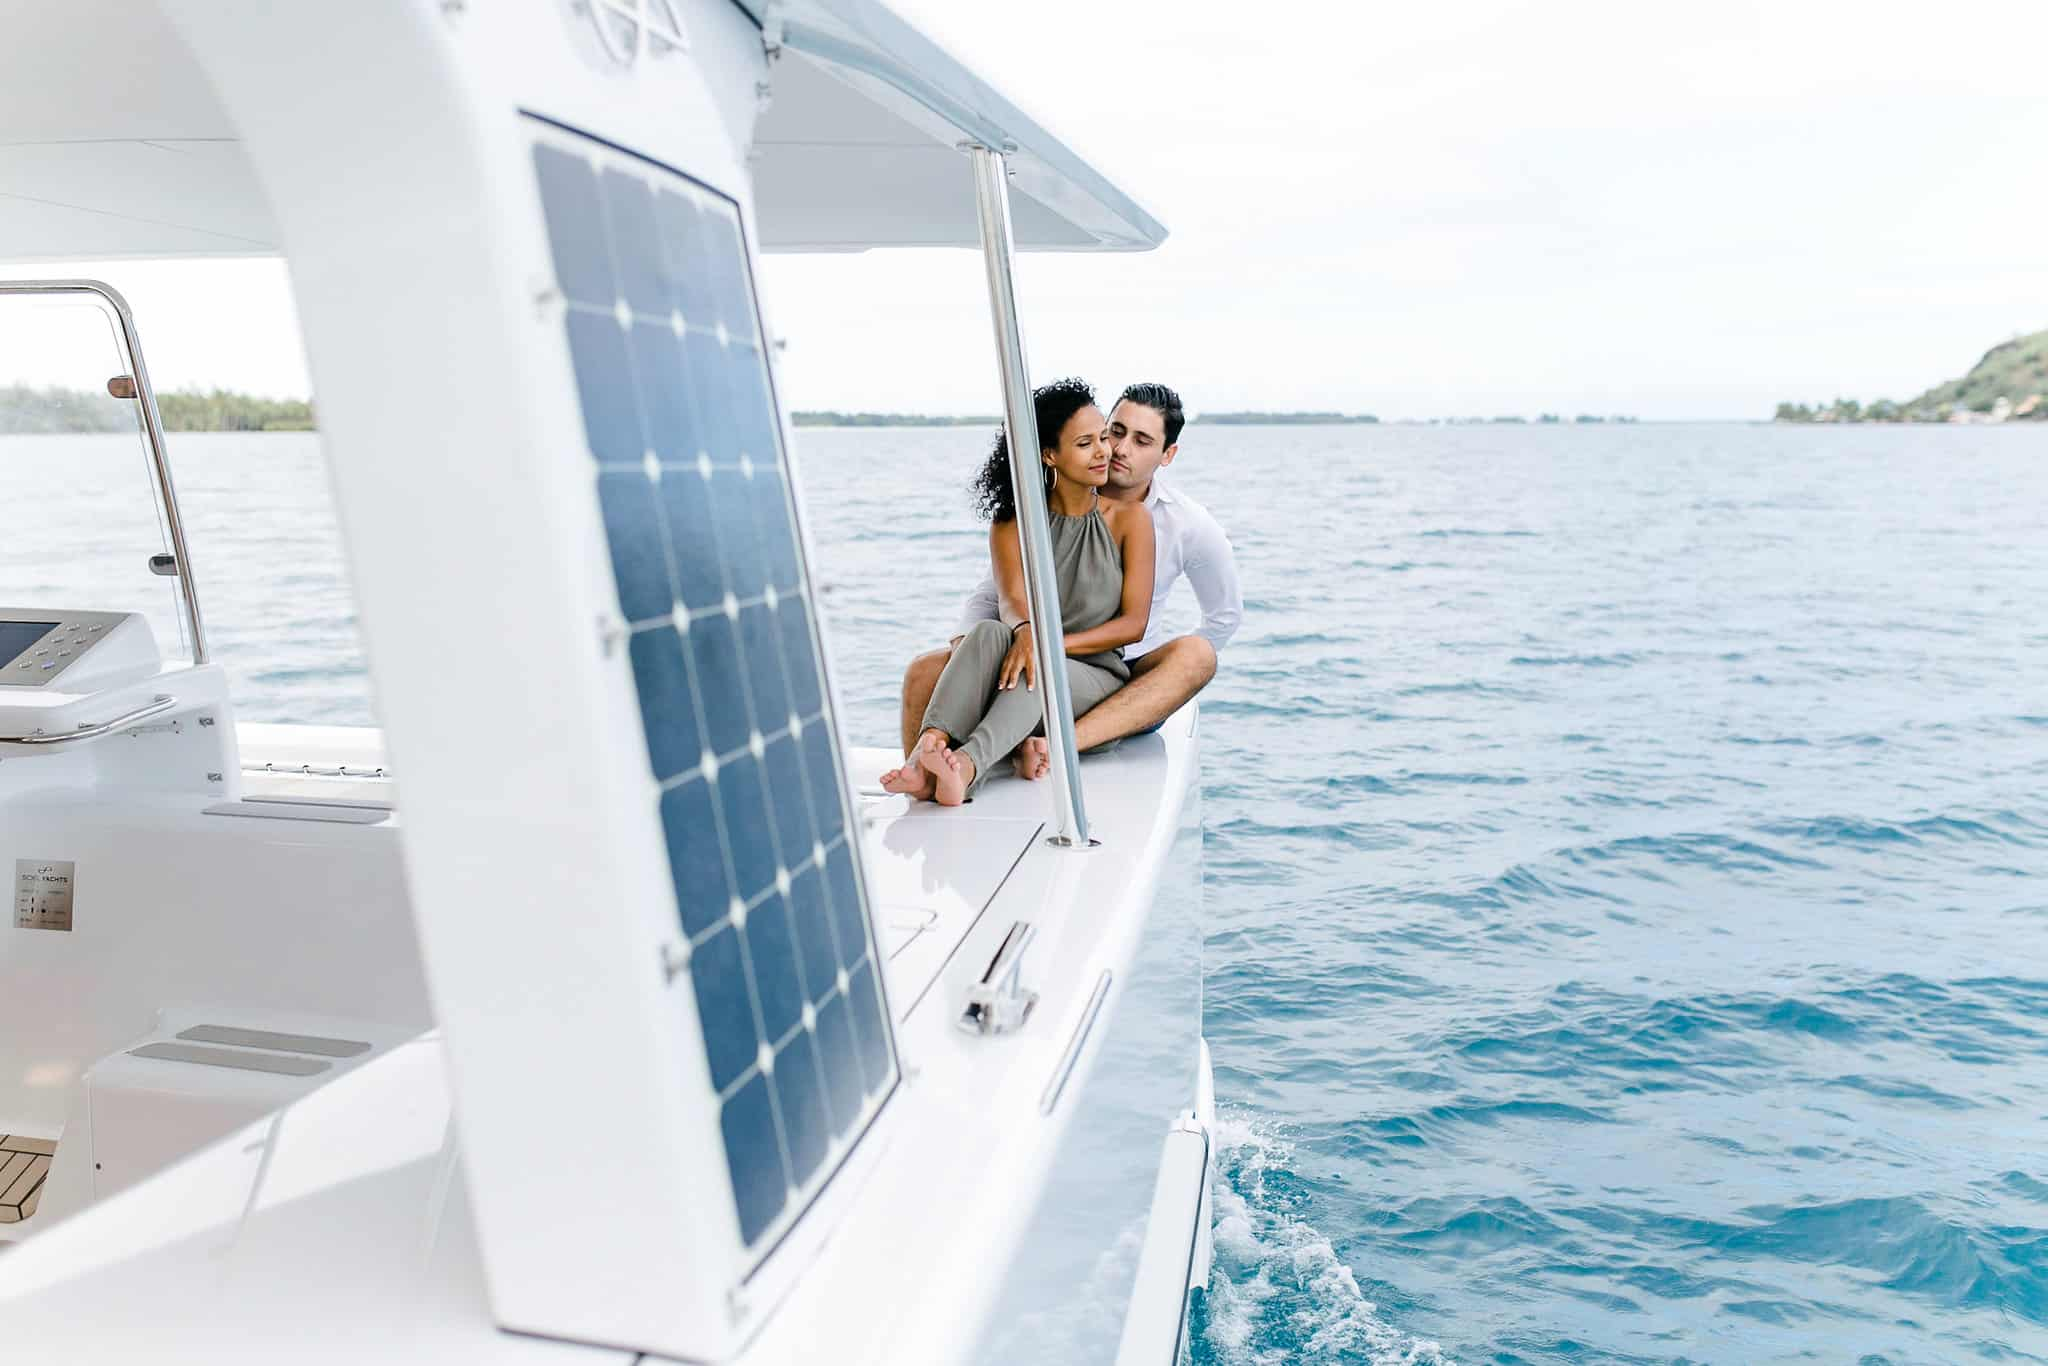 Enjoy a sustainable ride, with no noise involved on board of the first solar electric catamaran from Soel Yachts